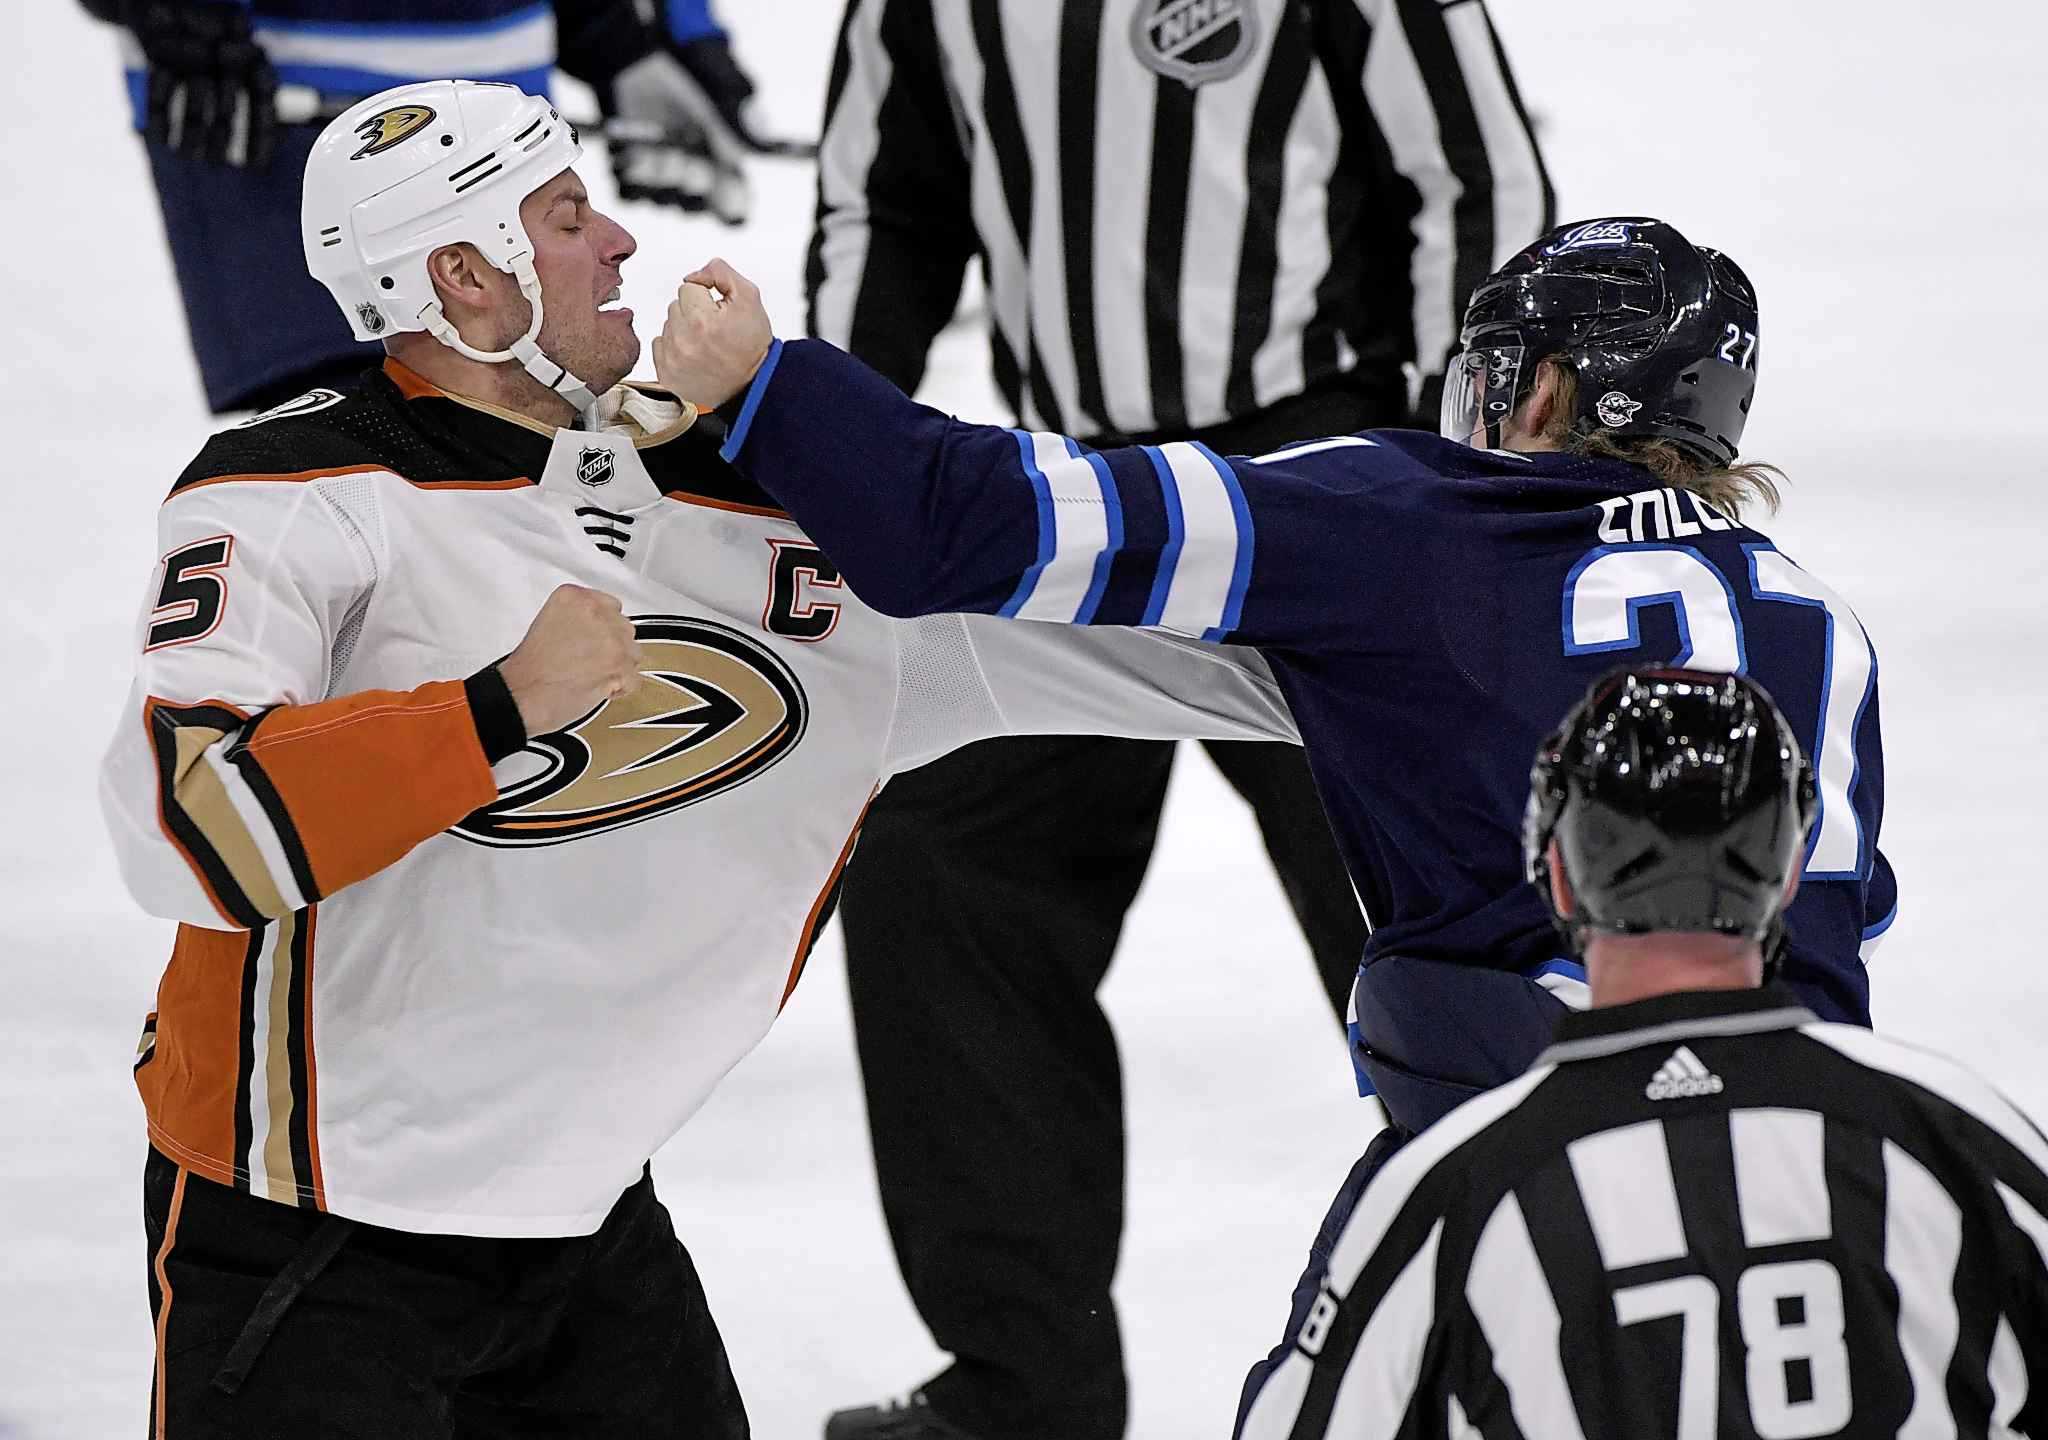 FRED GREENSLADE / THE CANADIAN PRESS</p><p>Winnipeg Jets' Nikolaj Ehlers (27) takes a swing at Anaheim Ducks' Ryan Getzlaf (15) as they fight during first period.</p>